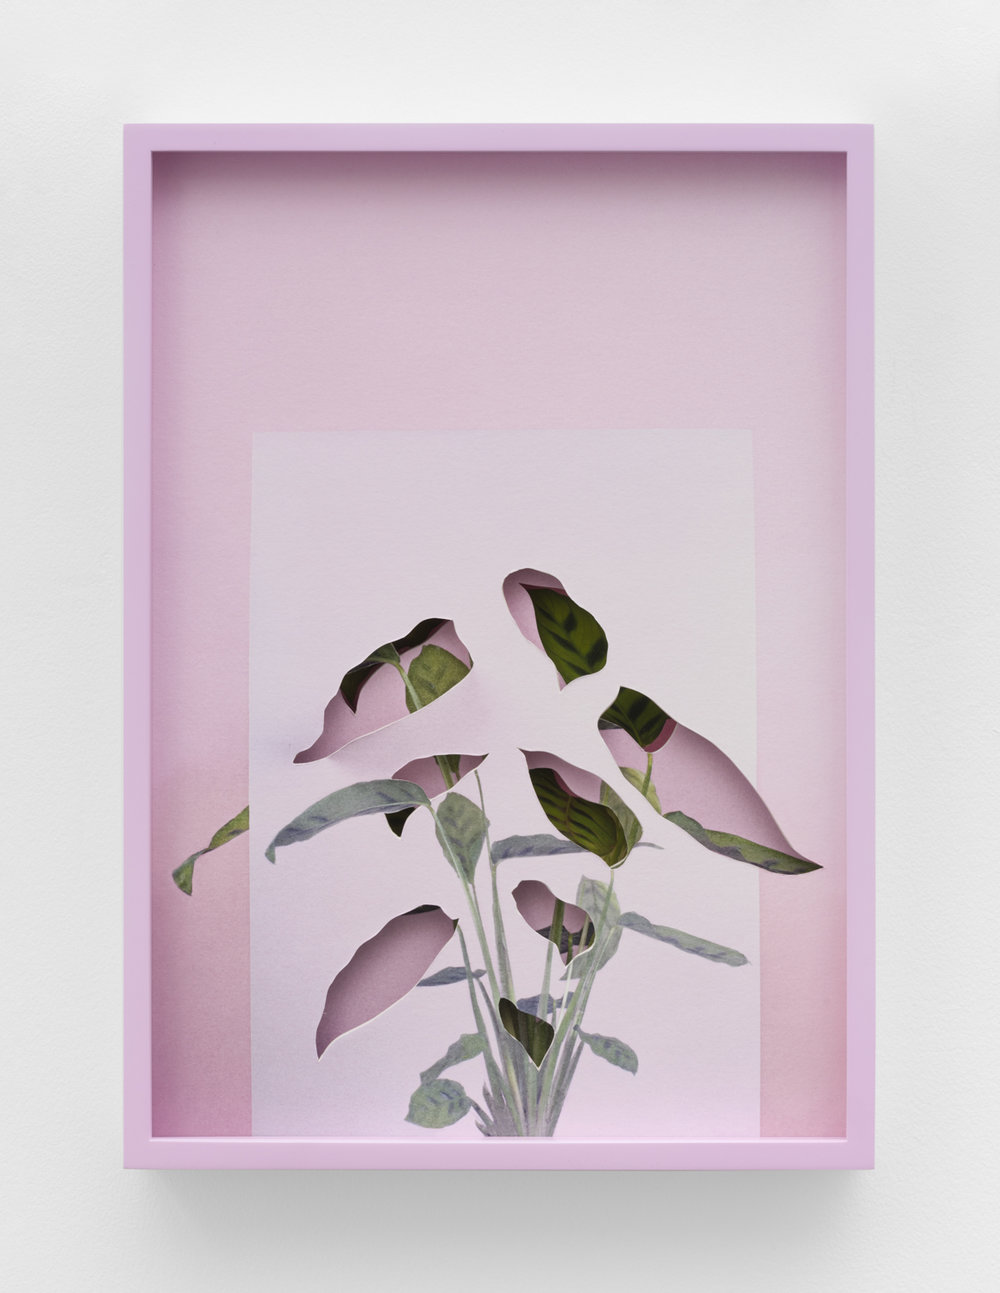 Alma Haser,  Calatheas , 2018  Layered and cut digital pigment prints (3 layers), 47 x 35 cm total (approx. 18.5 x 13.75 in), edition of 7, $1900   Inquire